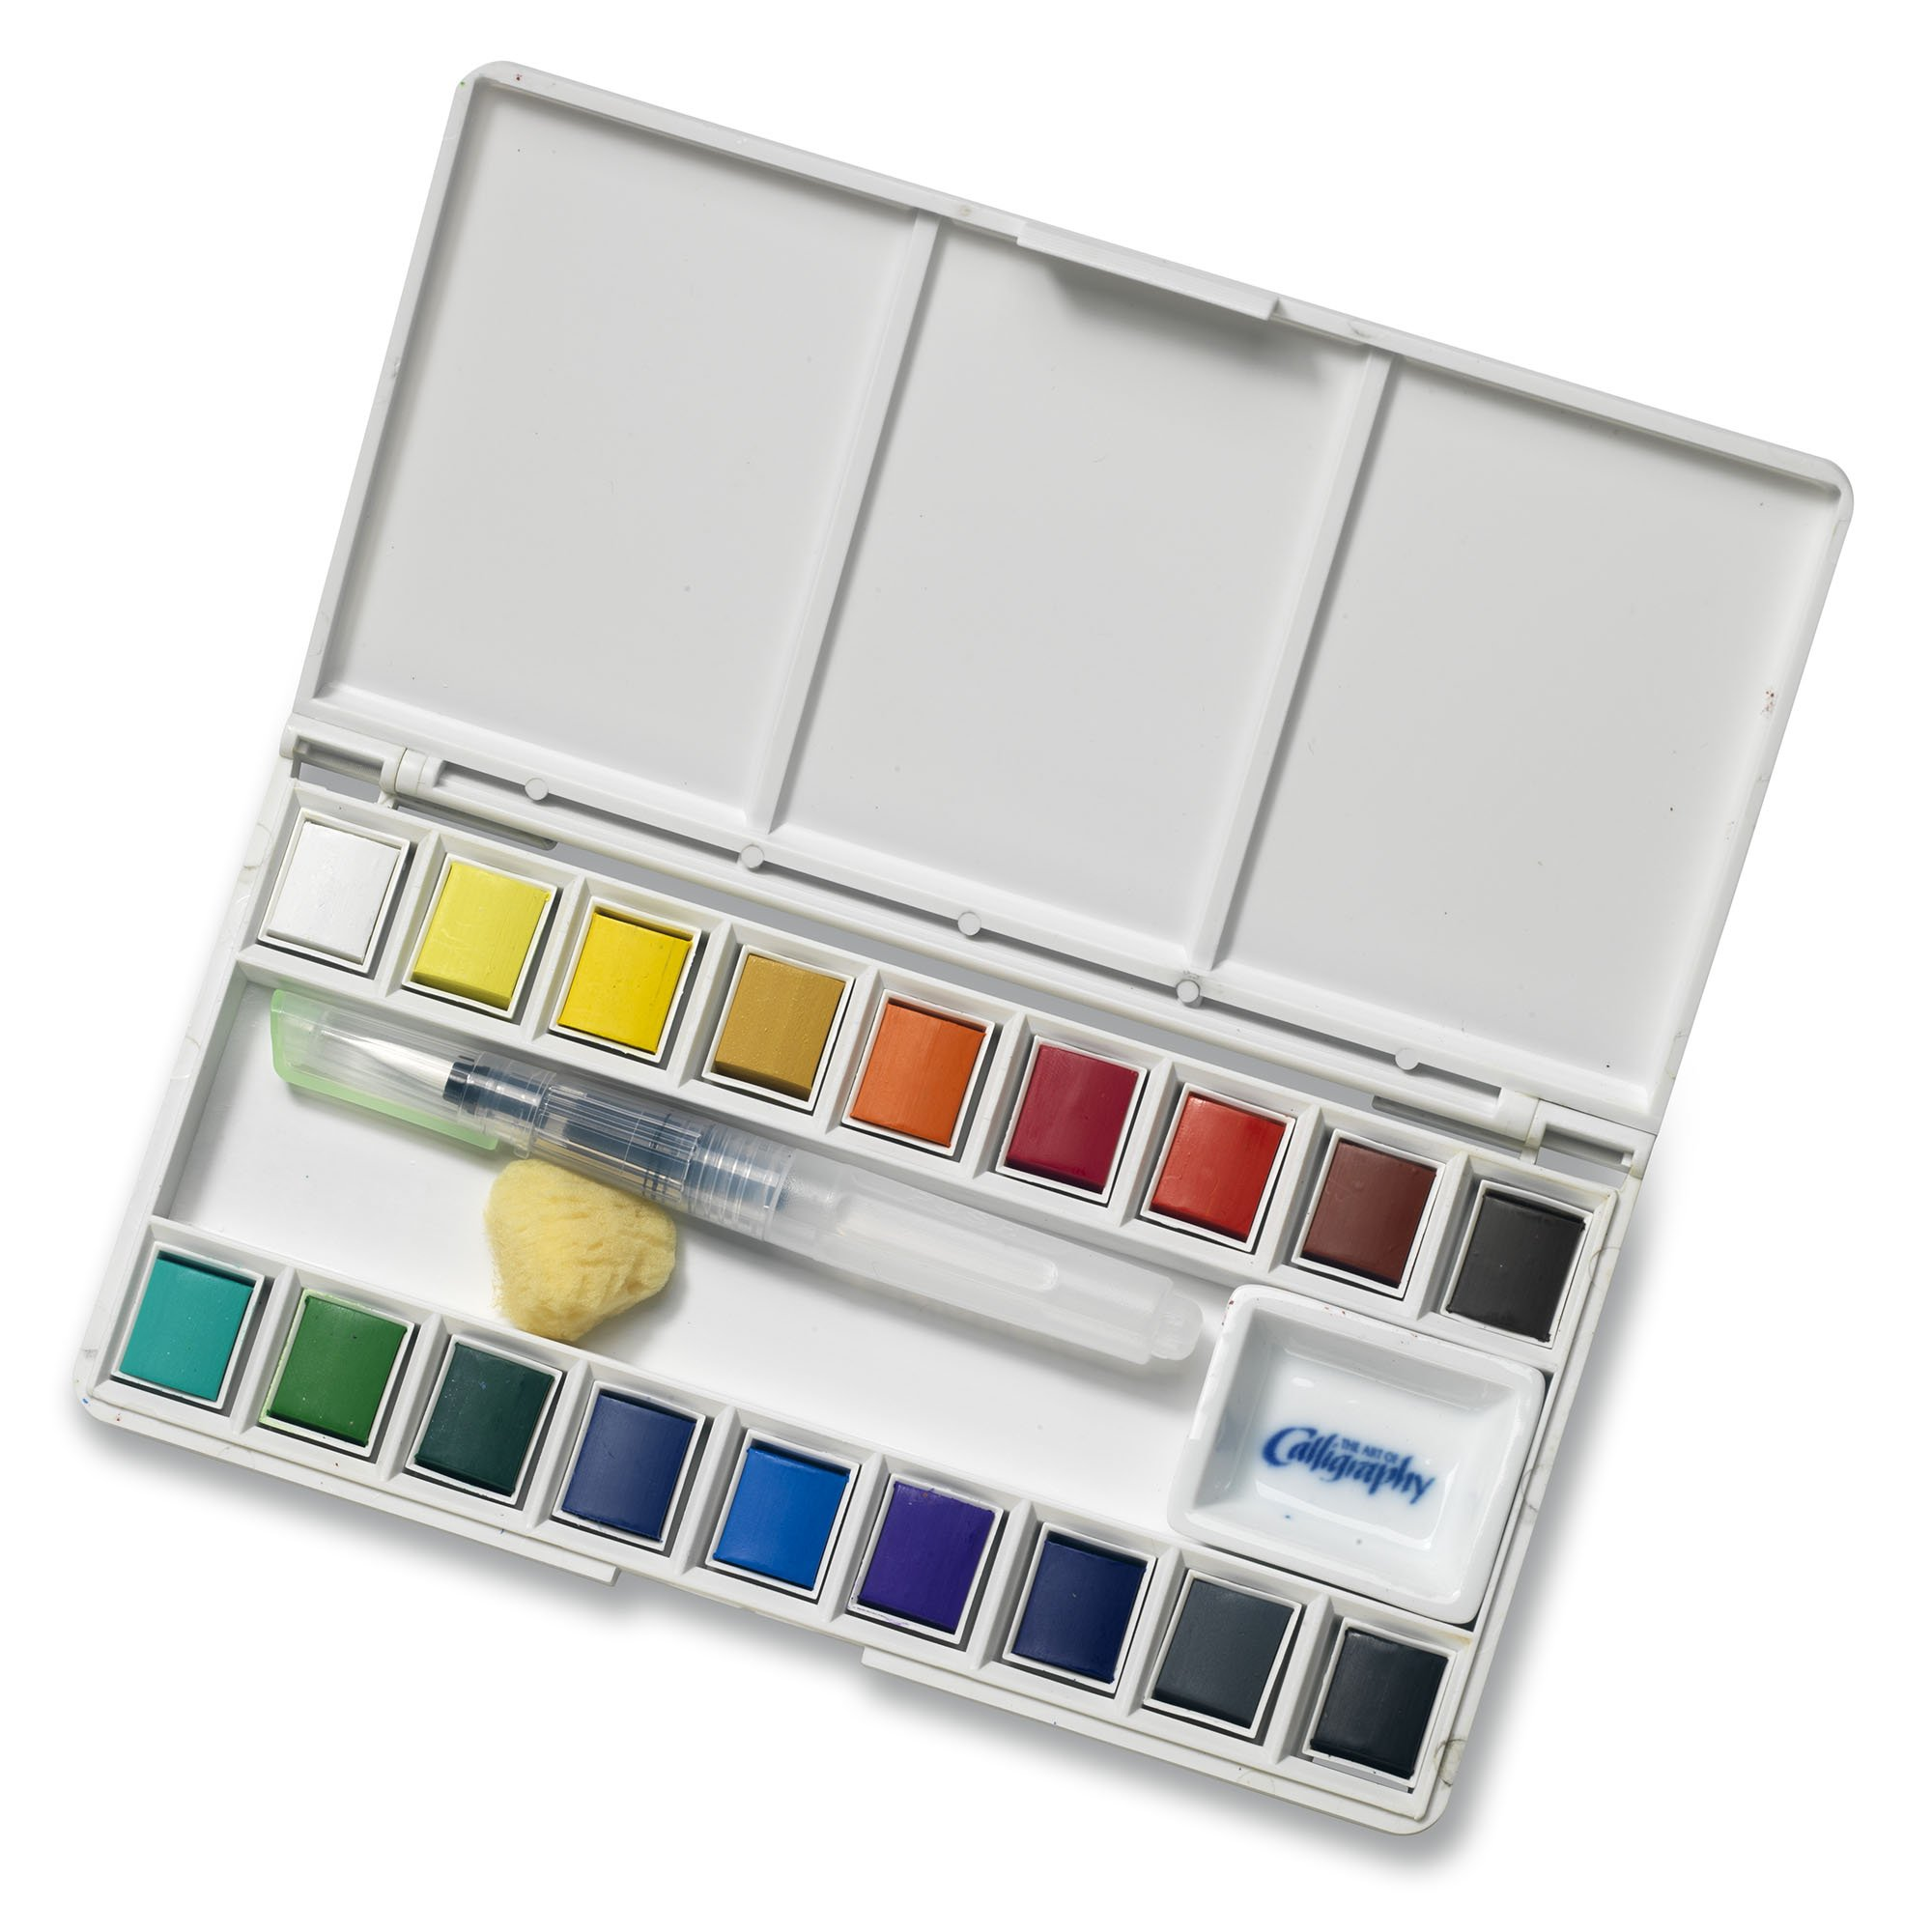 Jerry Q Art 18 Assorted Water Colors Travel Pocket Set- Free Refillable Water Brush with Sponge - Easy to Blend Colors - Built in Palette - Perfect for Painting On The Go JQ-118 by Jerry Q Art